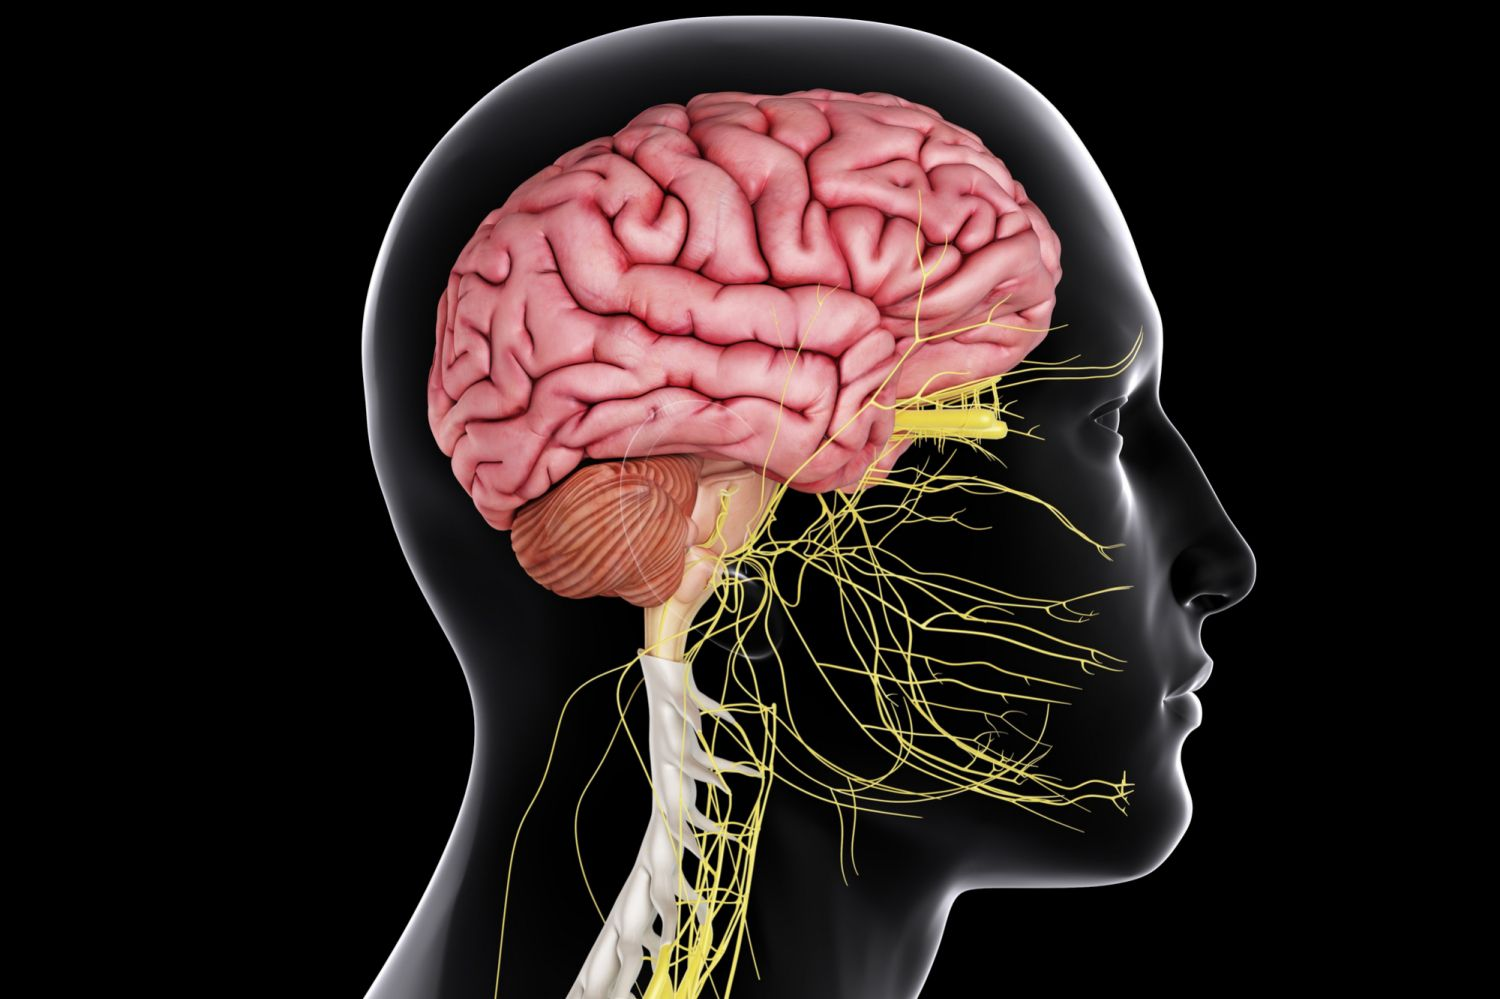 Functions Of The Central Nervous System